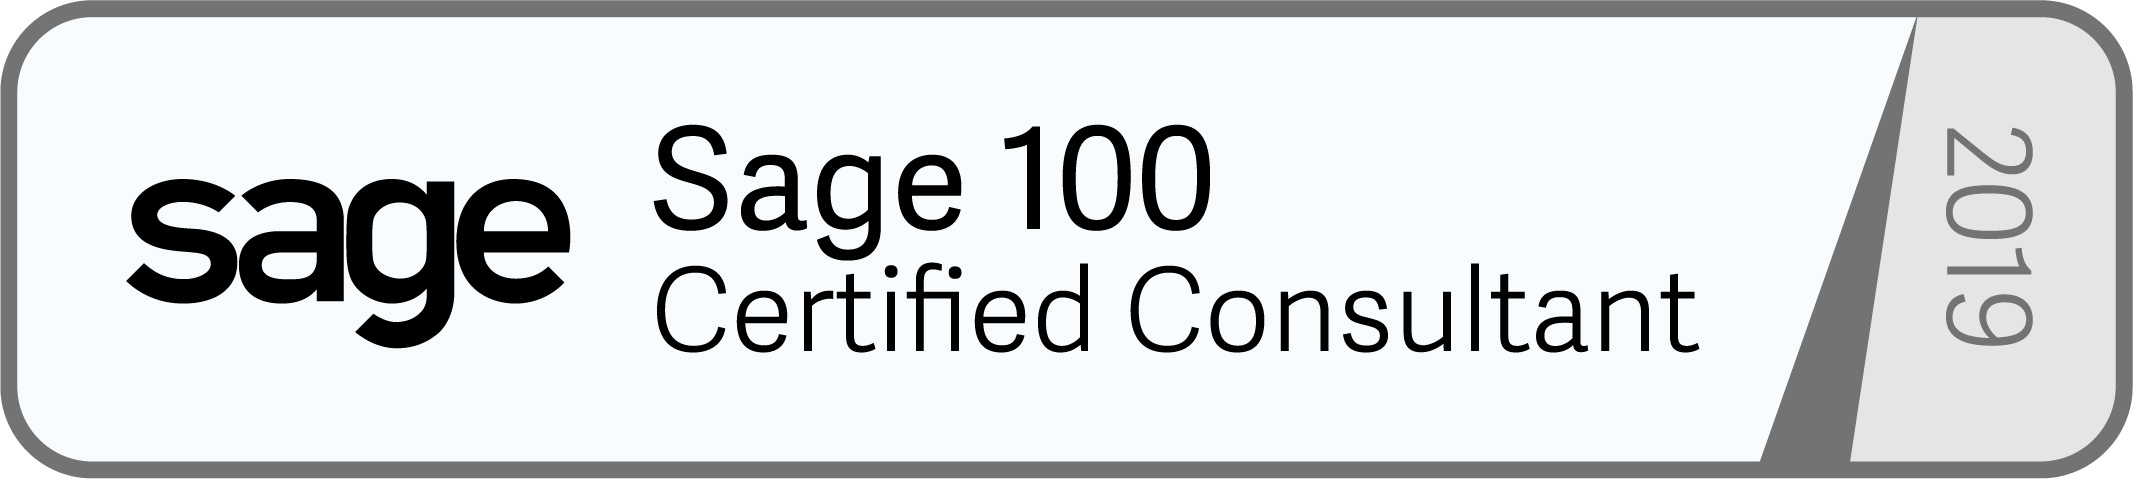 Sage_100_Certified_Consultant_2019_bw